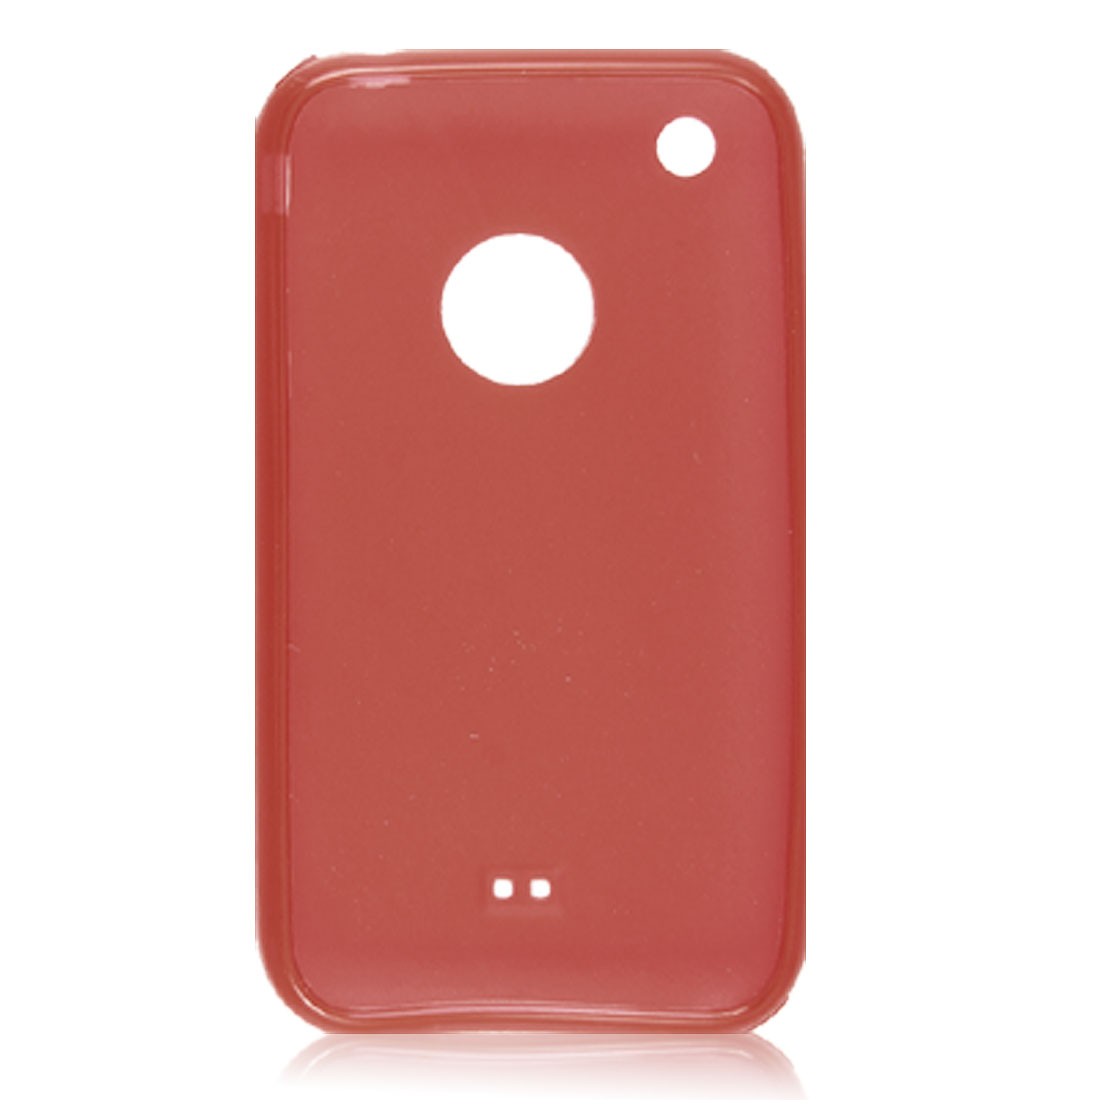 Red Soft Plastic Protector Case for Apple iPhone 3G